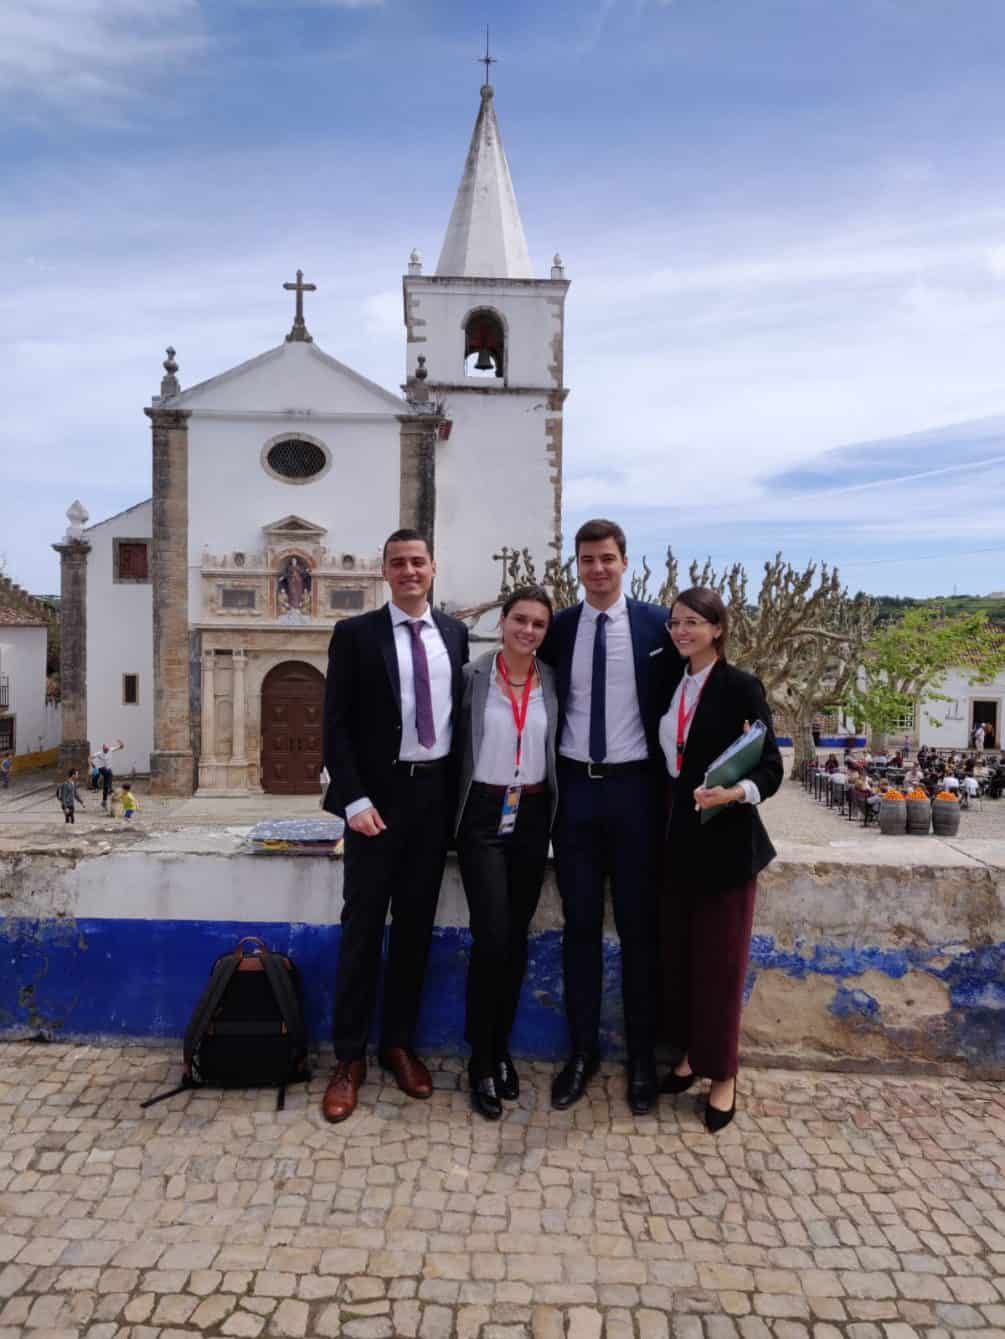 students-law-ie-moot-court-competition-win-european-law